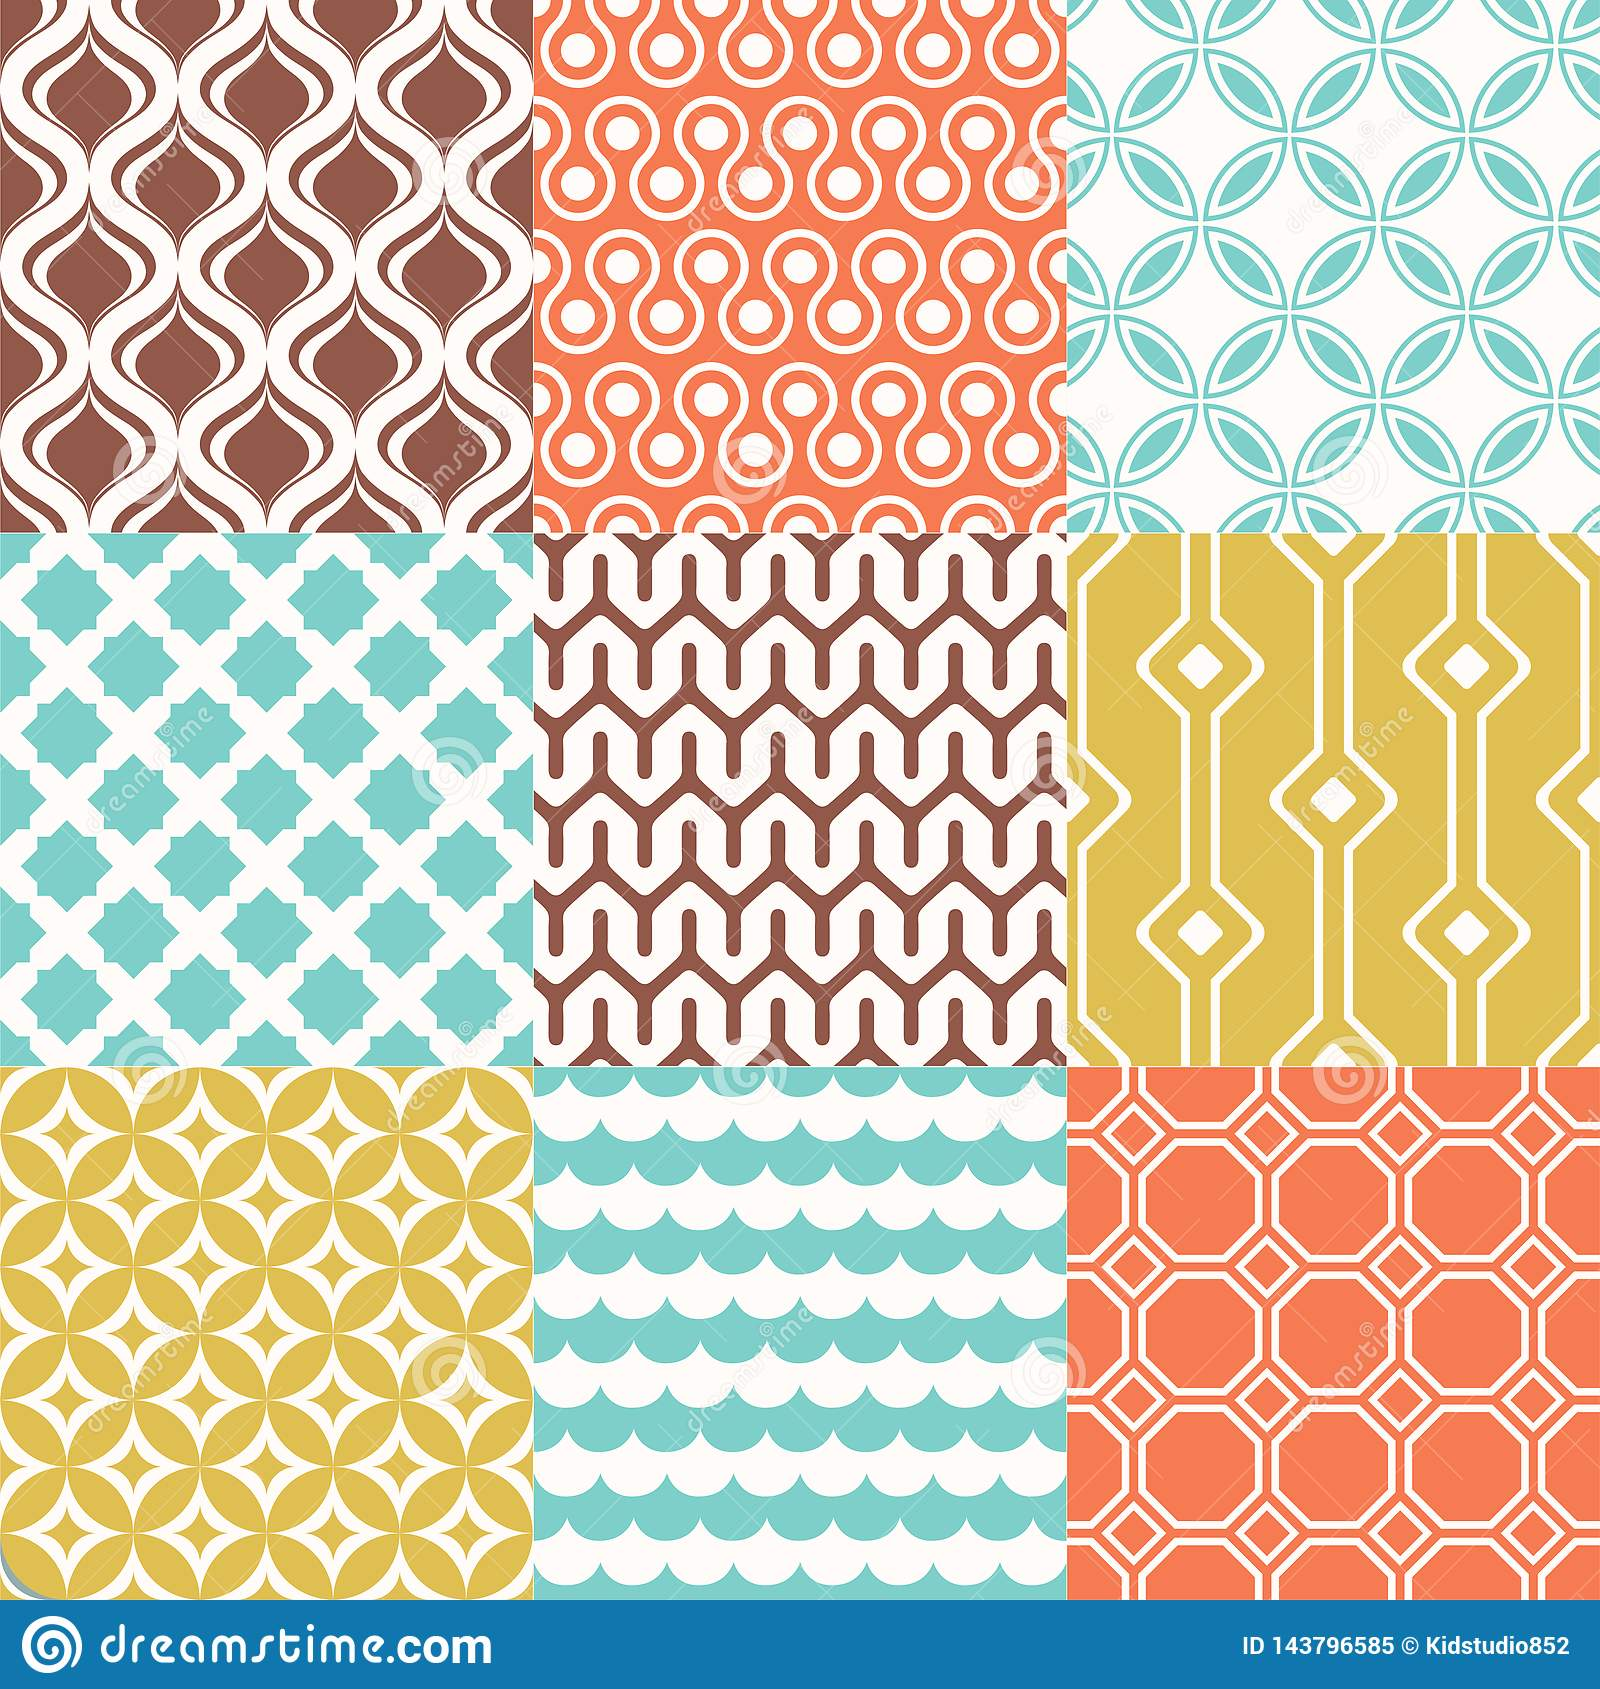 Retro Mid Century 70s Geometric Wallpaper Pattern Funky Colorful Texture Seamless Background Stock Vector Illustration Of Background Geometry 143796585